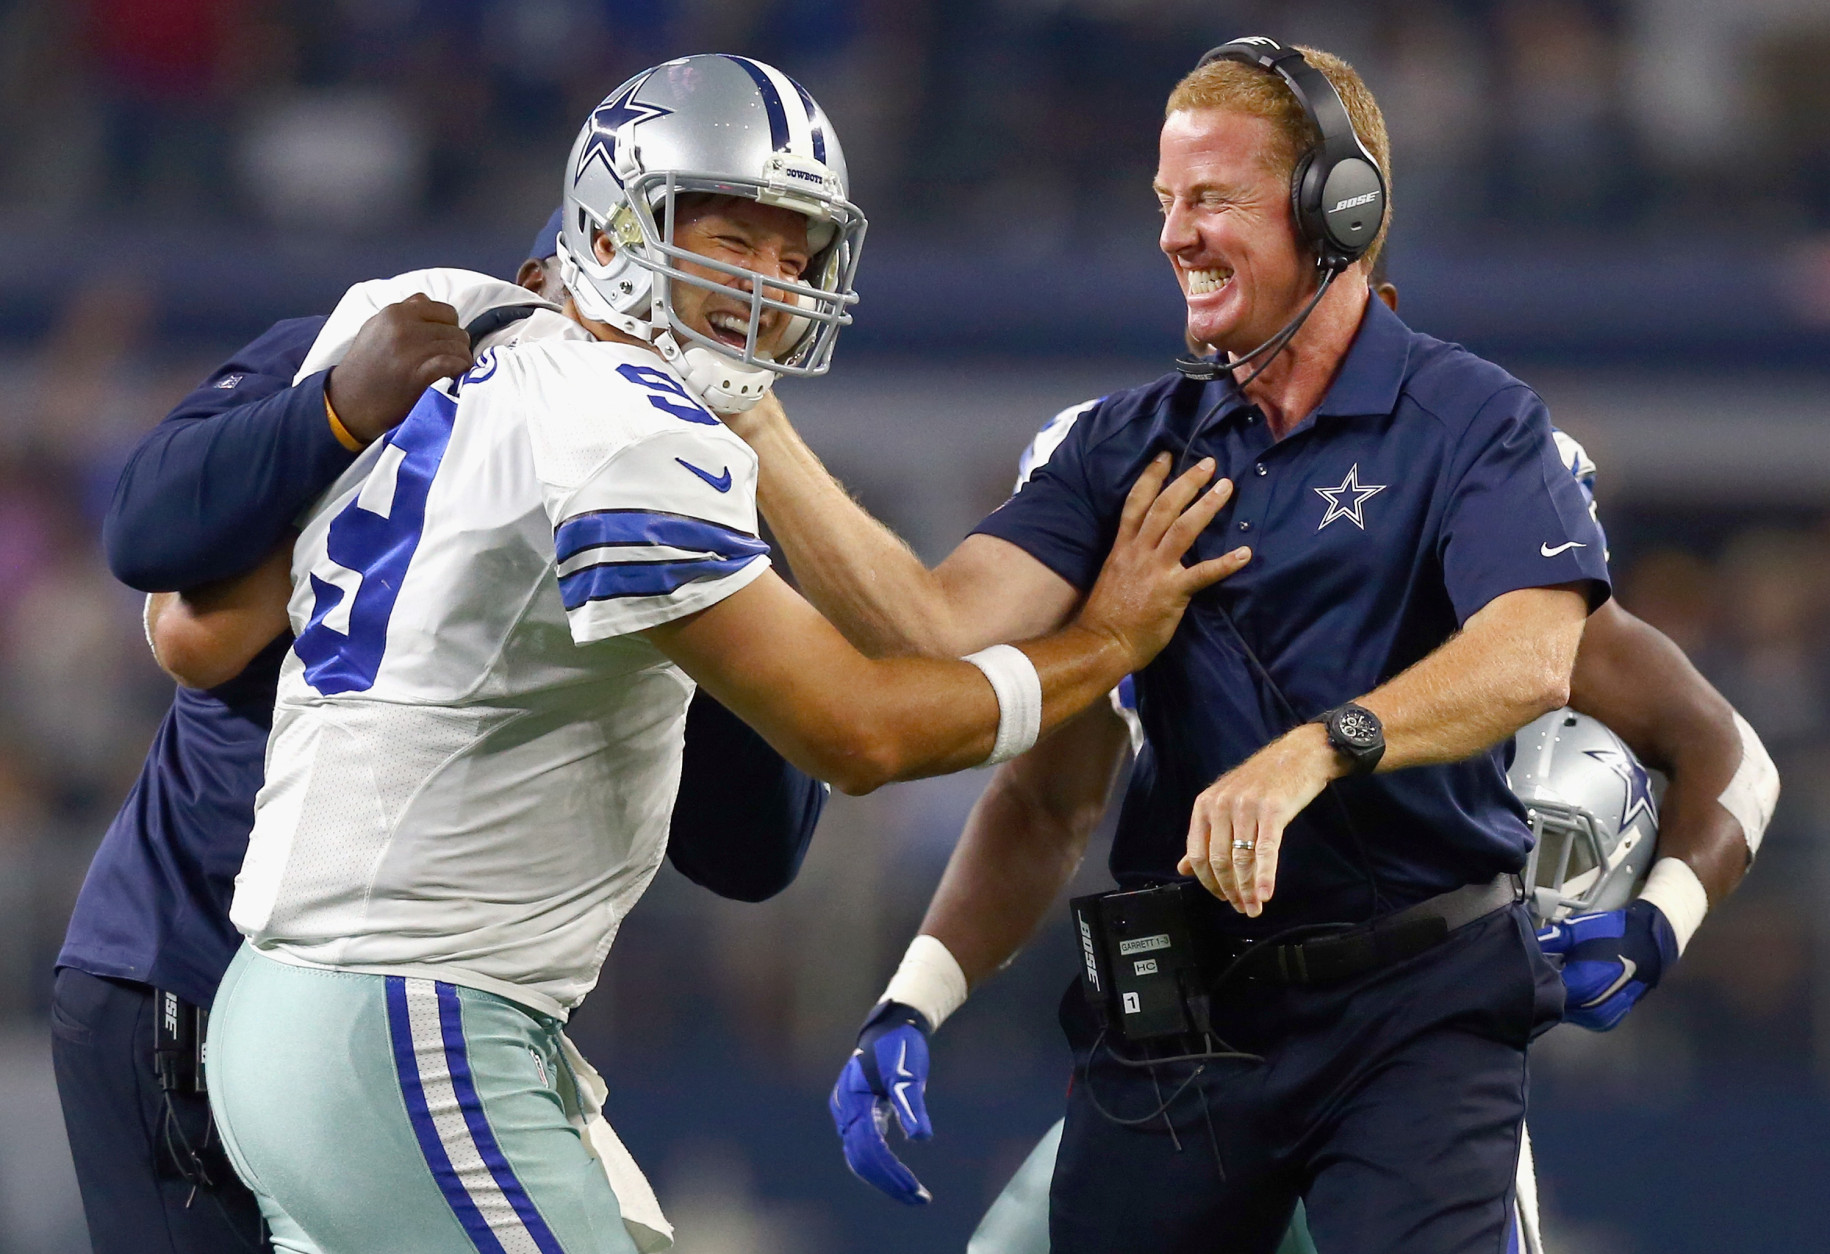 ARLINGTON, TX - SEPTEMBER 13:  Tony Romo #9 of the Dallas Cowboys celebrates with head coach Jason Garrett of the Dallas Cowboys after scoring the game winning touchdown against the New York Giants at AT&T Stadium on September 13, 2015 in Arlington, Texas.  (Photo by Tom Pennington/Getty Images)